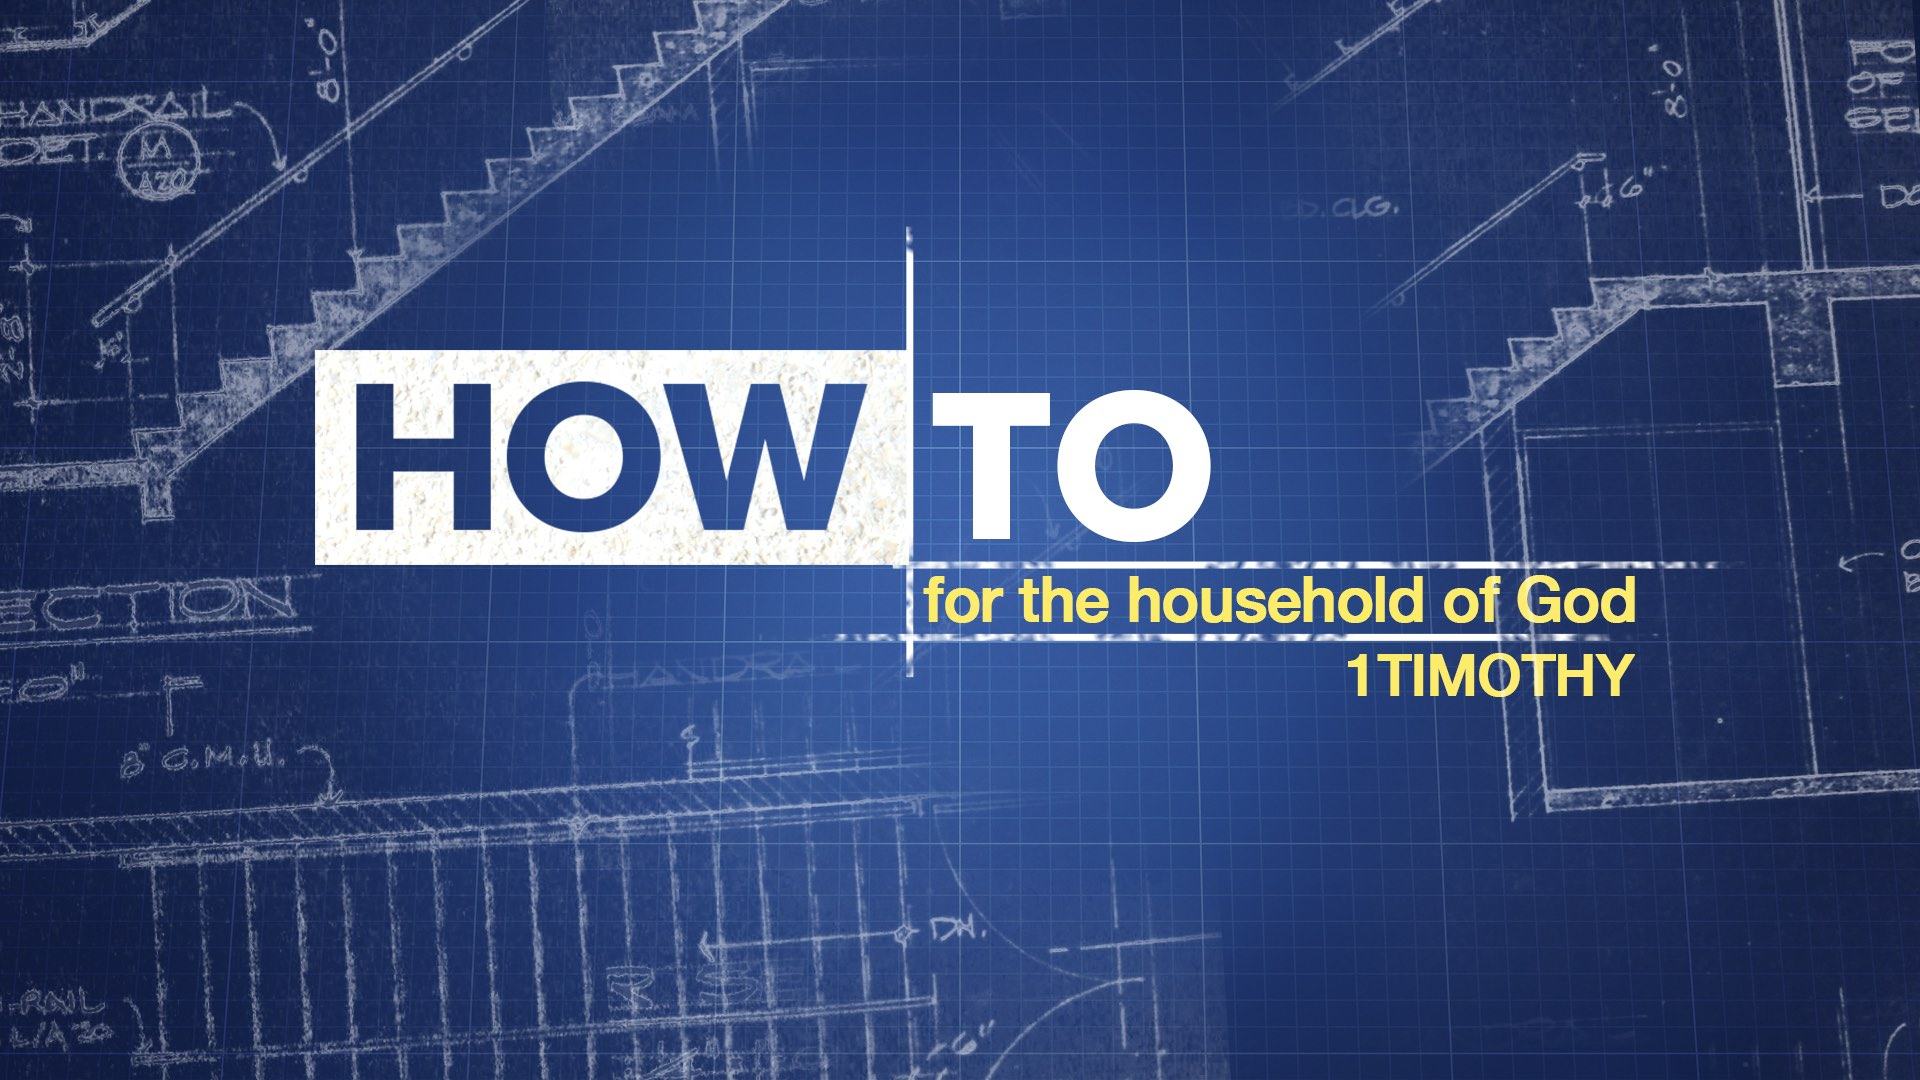 How To for the Household of God